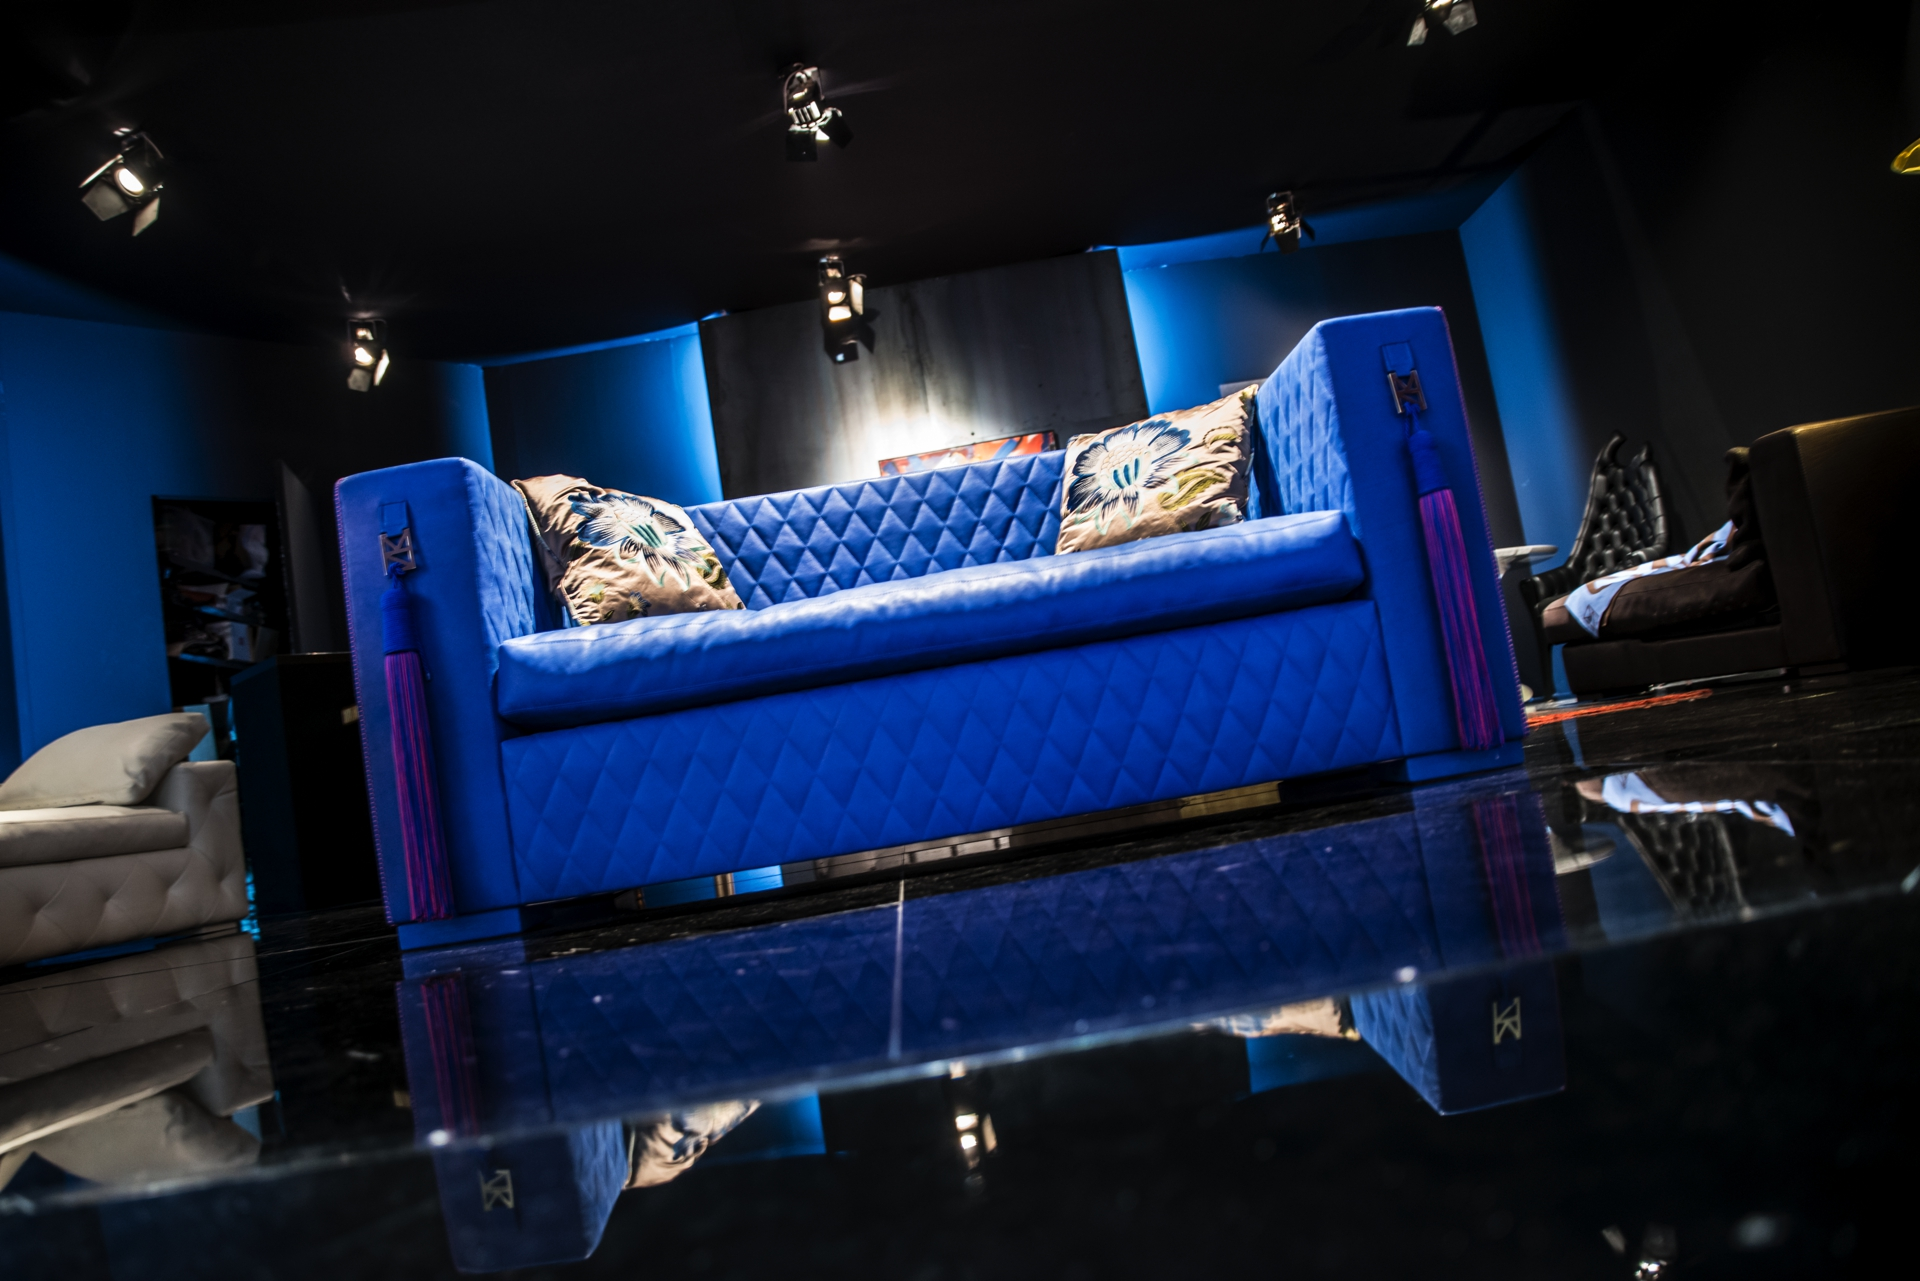 Salone del mobile 2014 exhibition luxury furniture by romeo orsi made in italy-0034